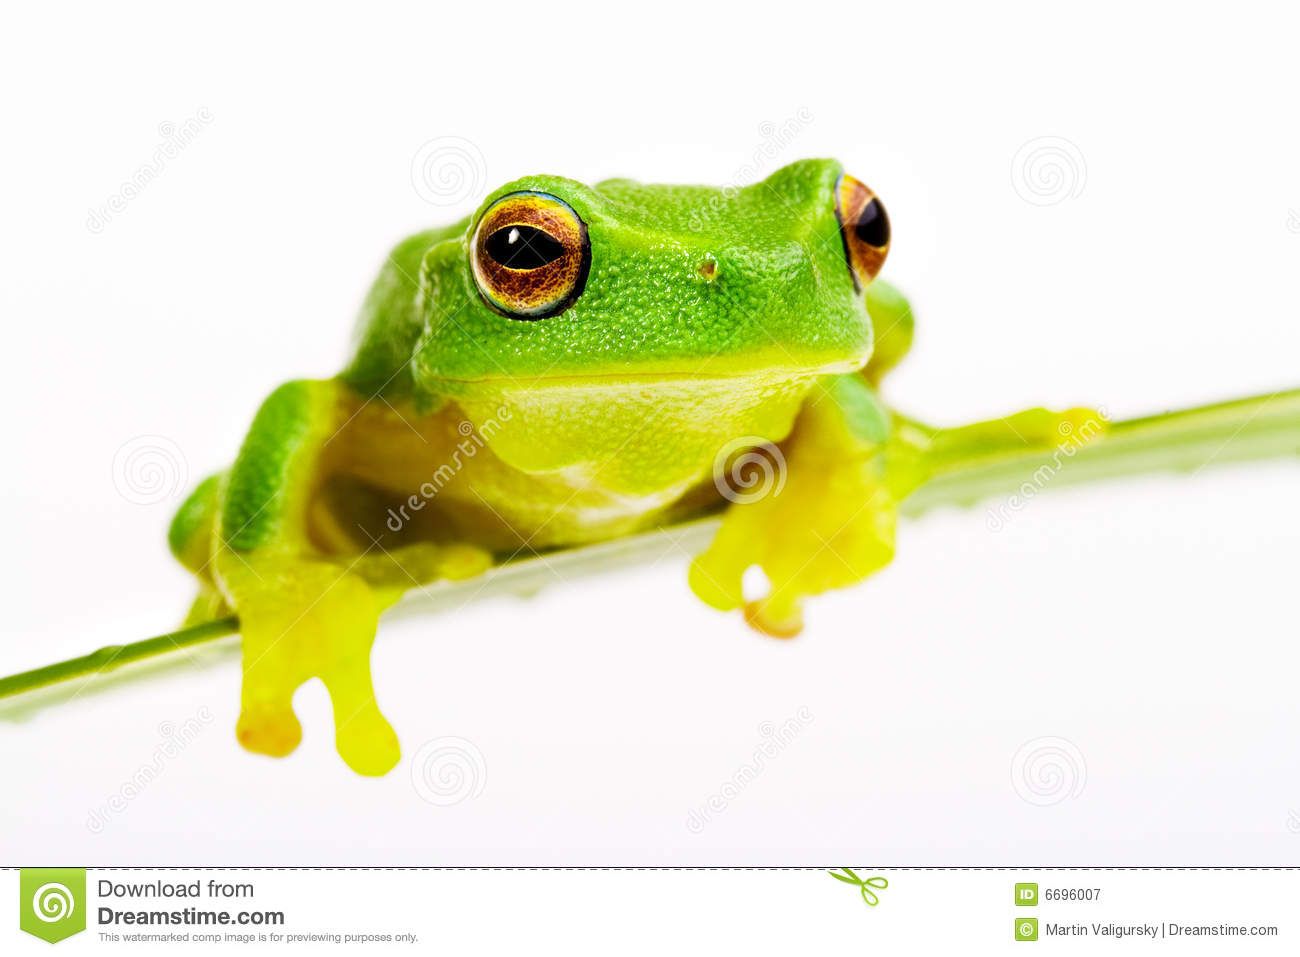 green tree frog sitting on grass blade royalty free stock